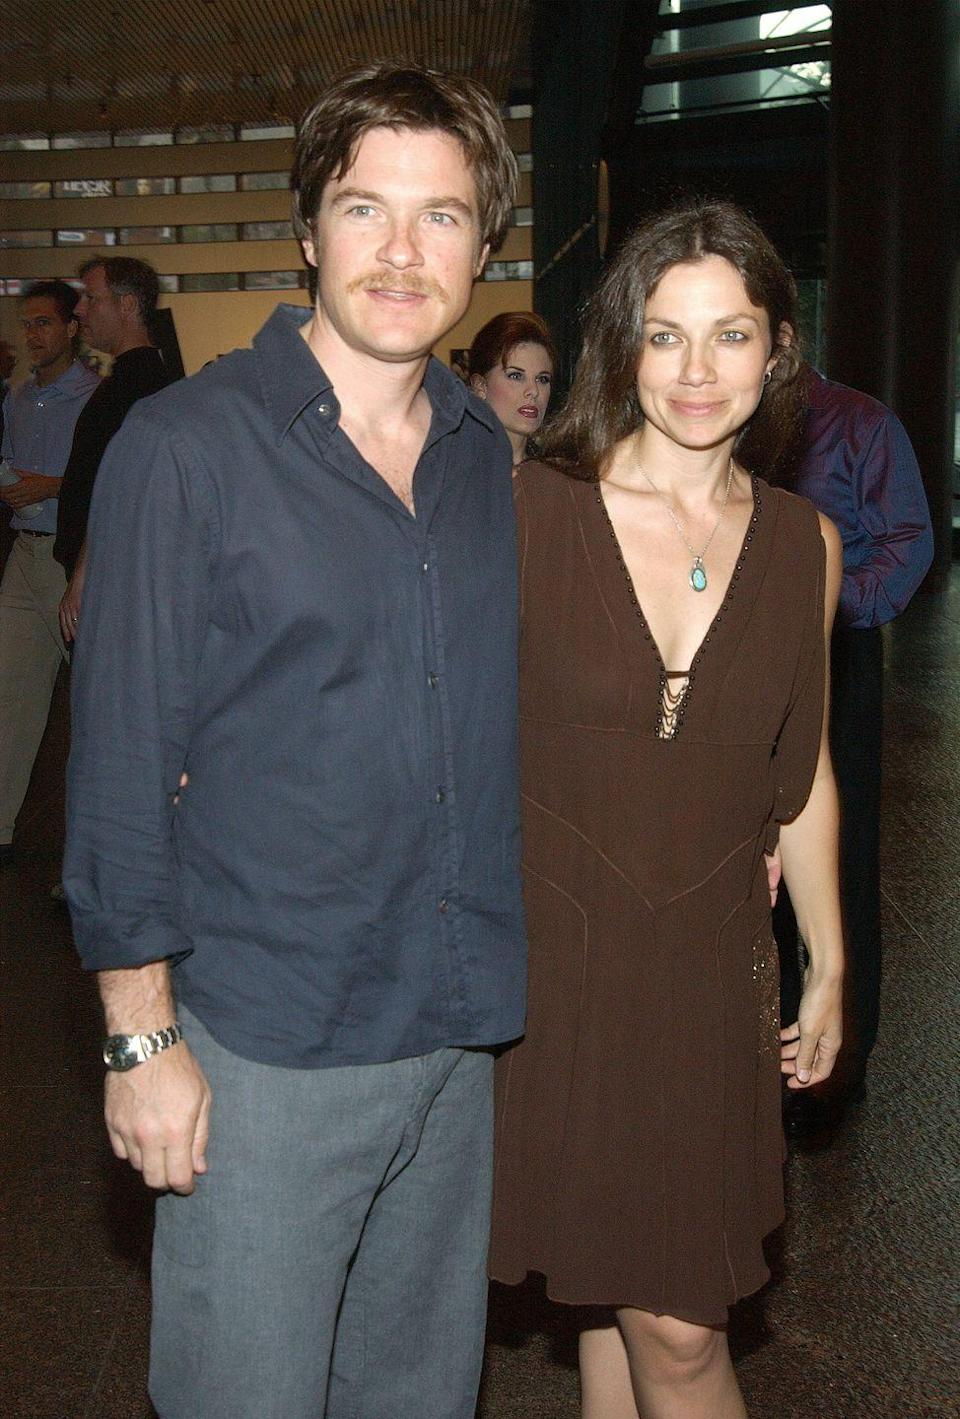 <p>Justine Bateman got her start in Hollywood as a teen actress on <em>Family Ties. </em>Her brother, Jason Bateman, soon joined her on-screen. Along with their acting chops, they have similar noses and light green eyes. </p>